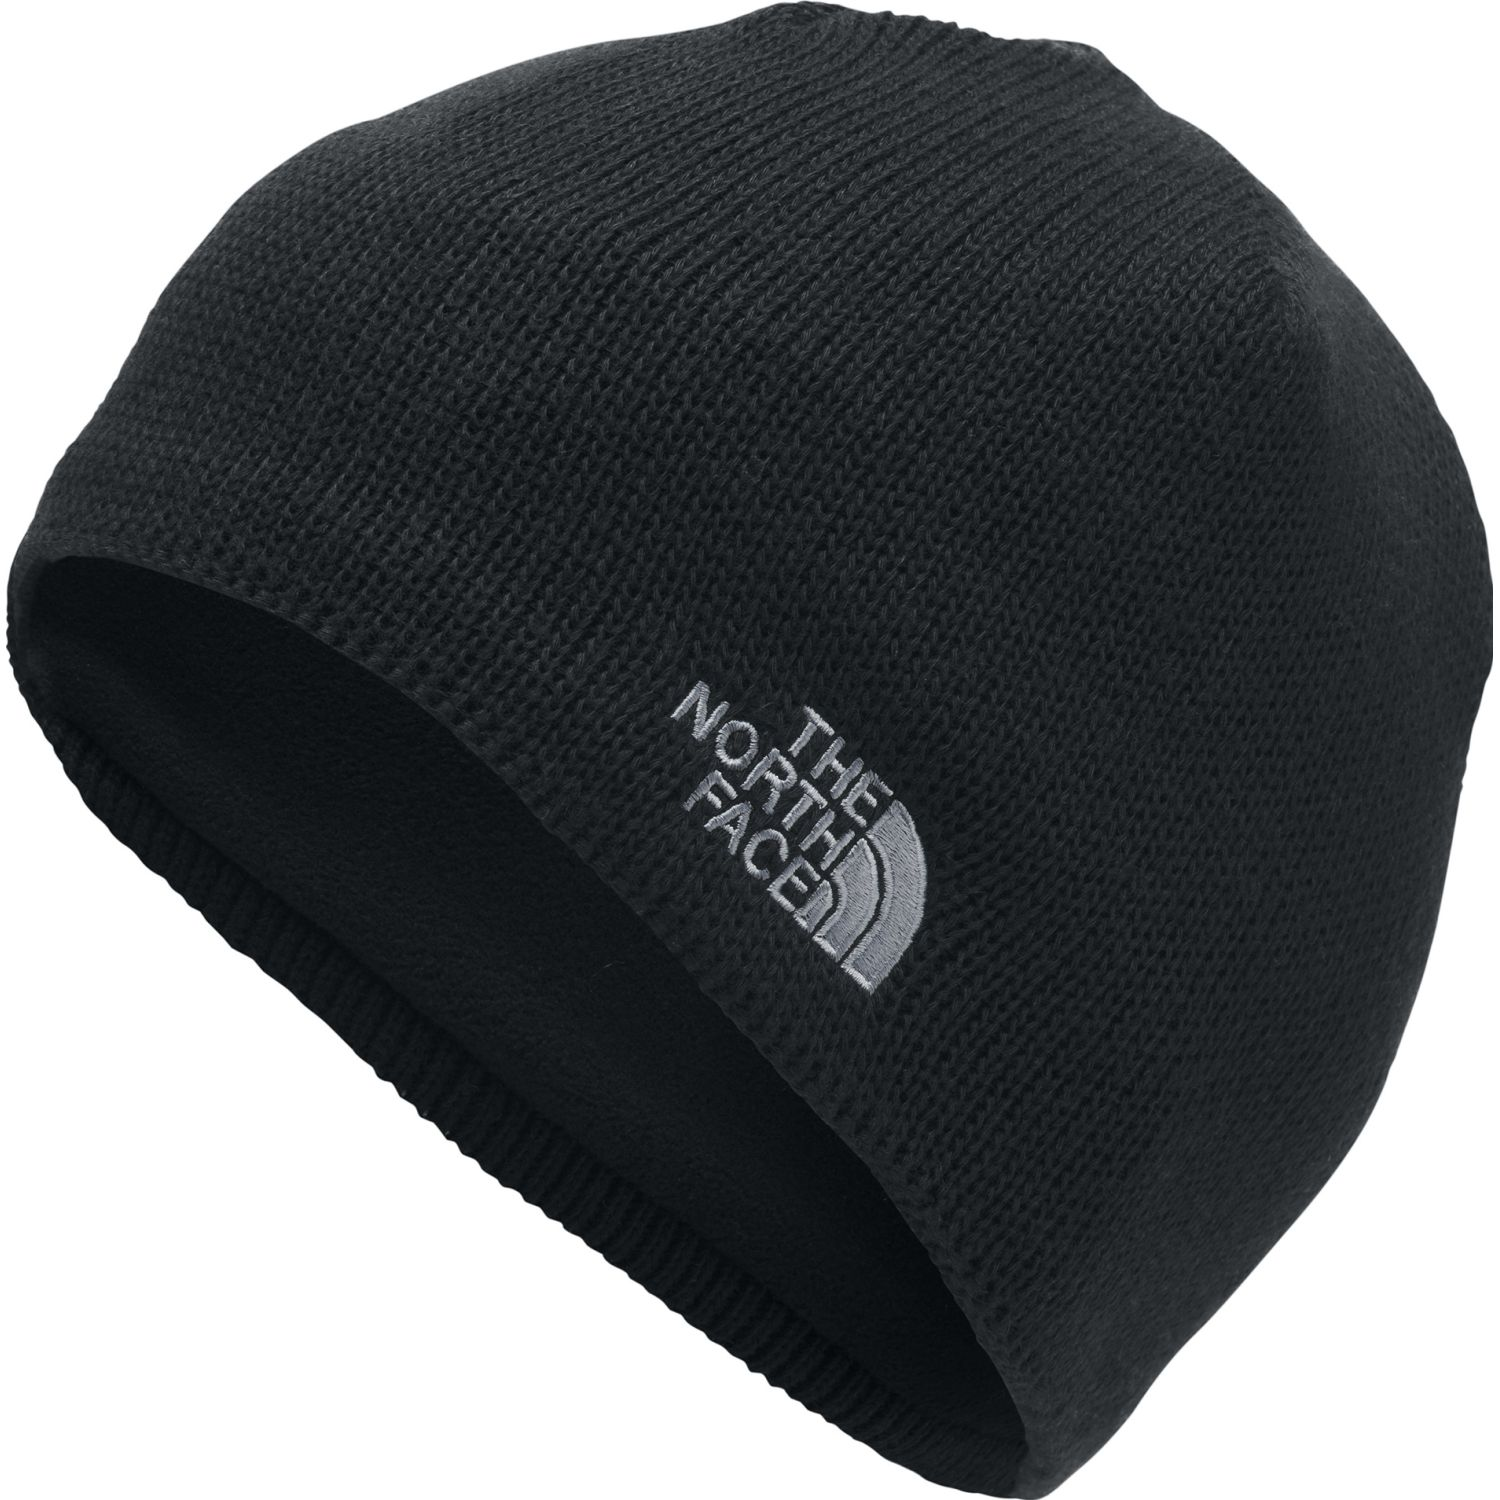 The North Face bones recycled beanie Negro Chullos y Gorros